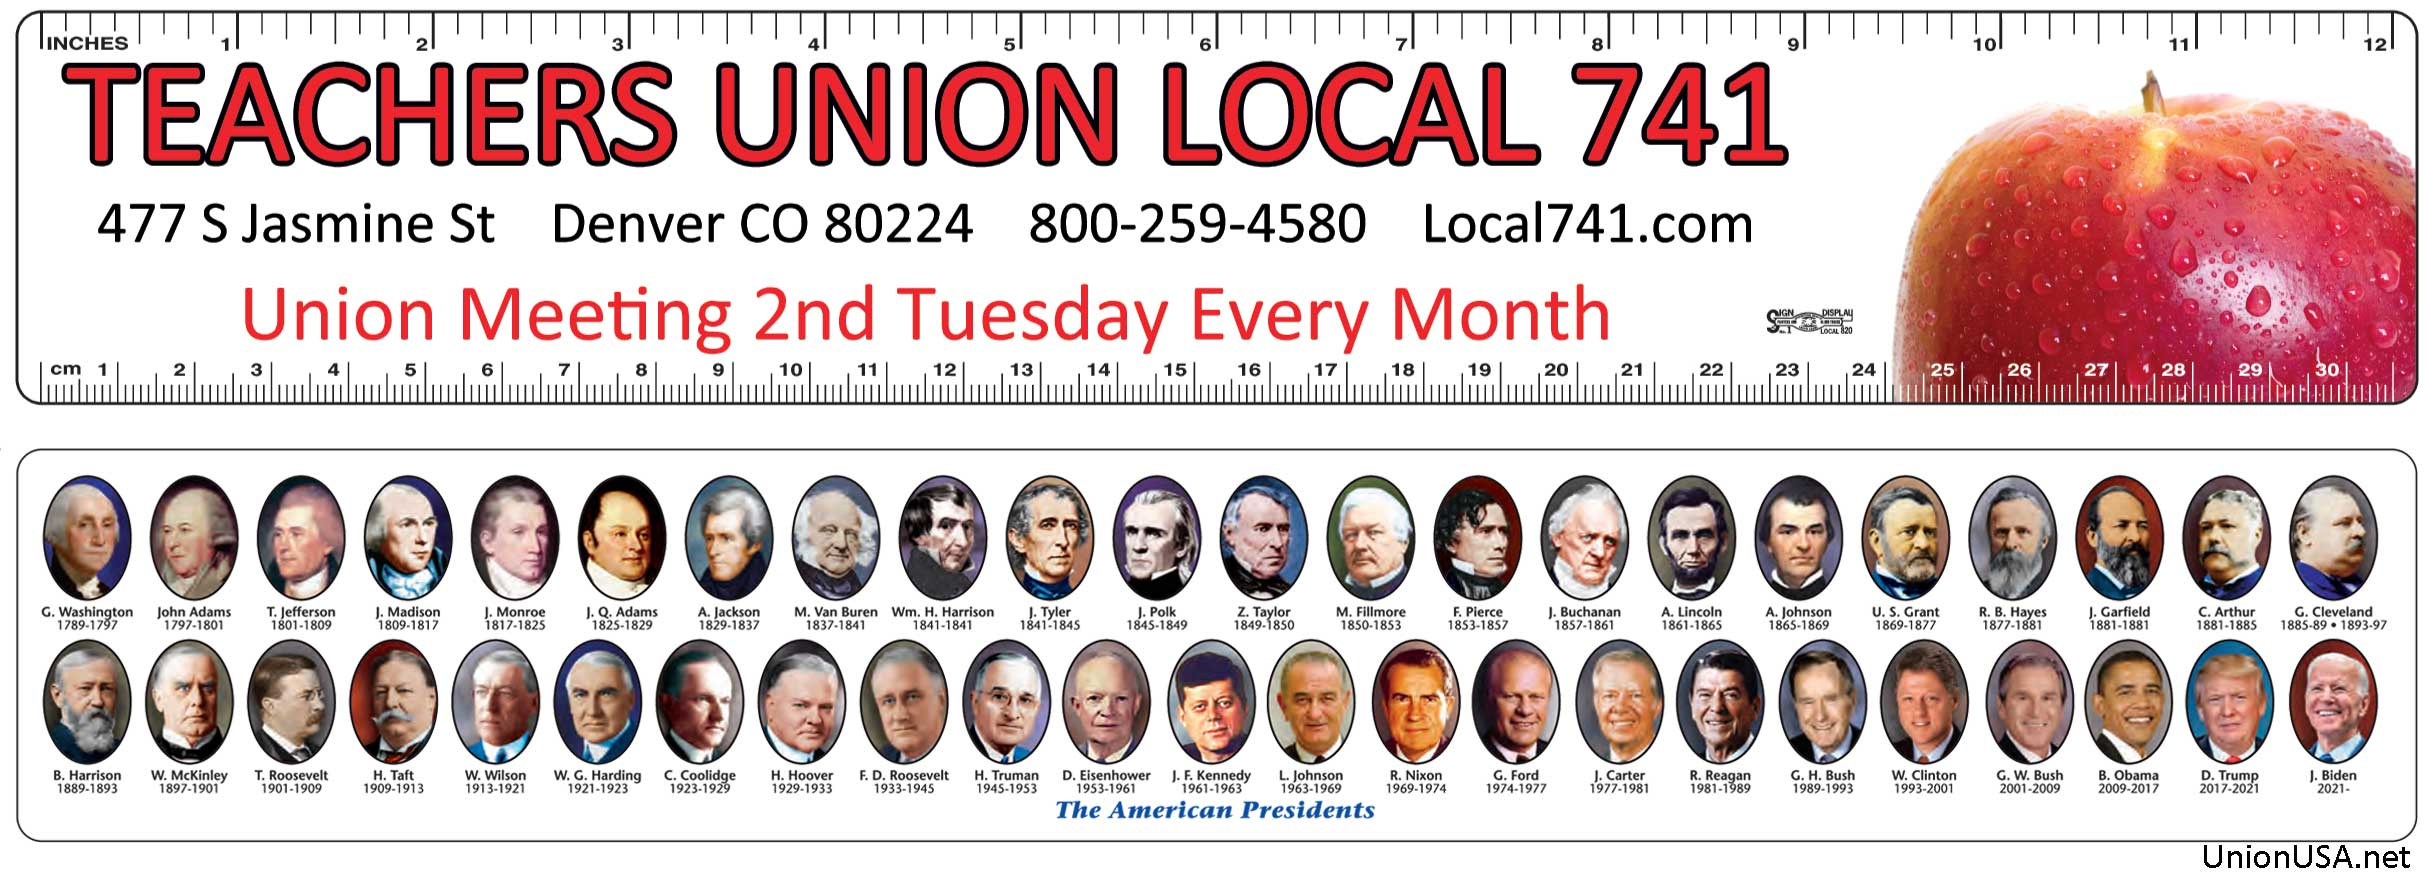 Union Presidential Rulers, Union Made & Union Printed